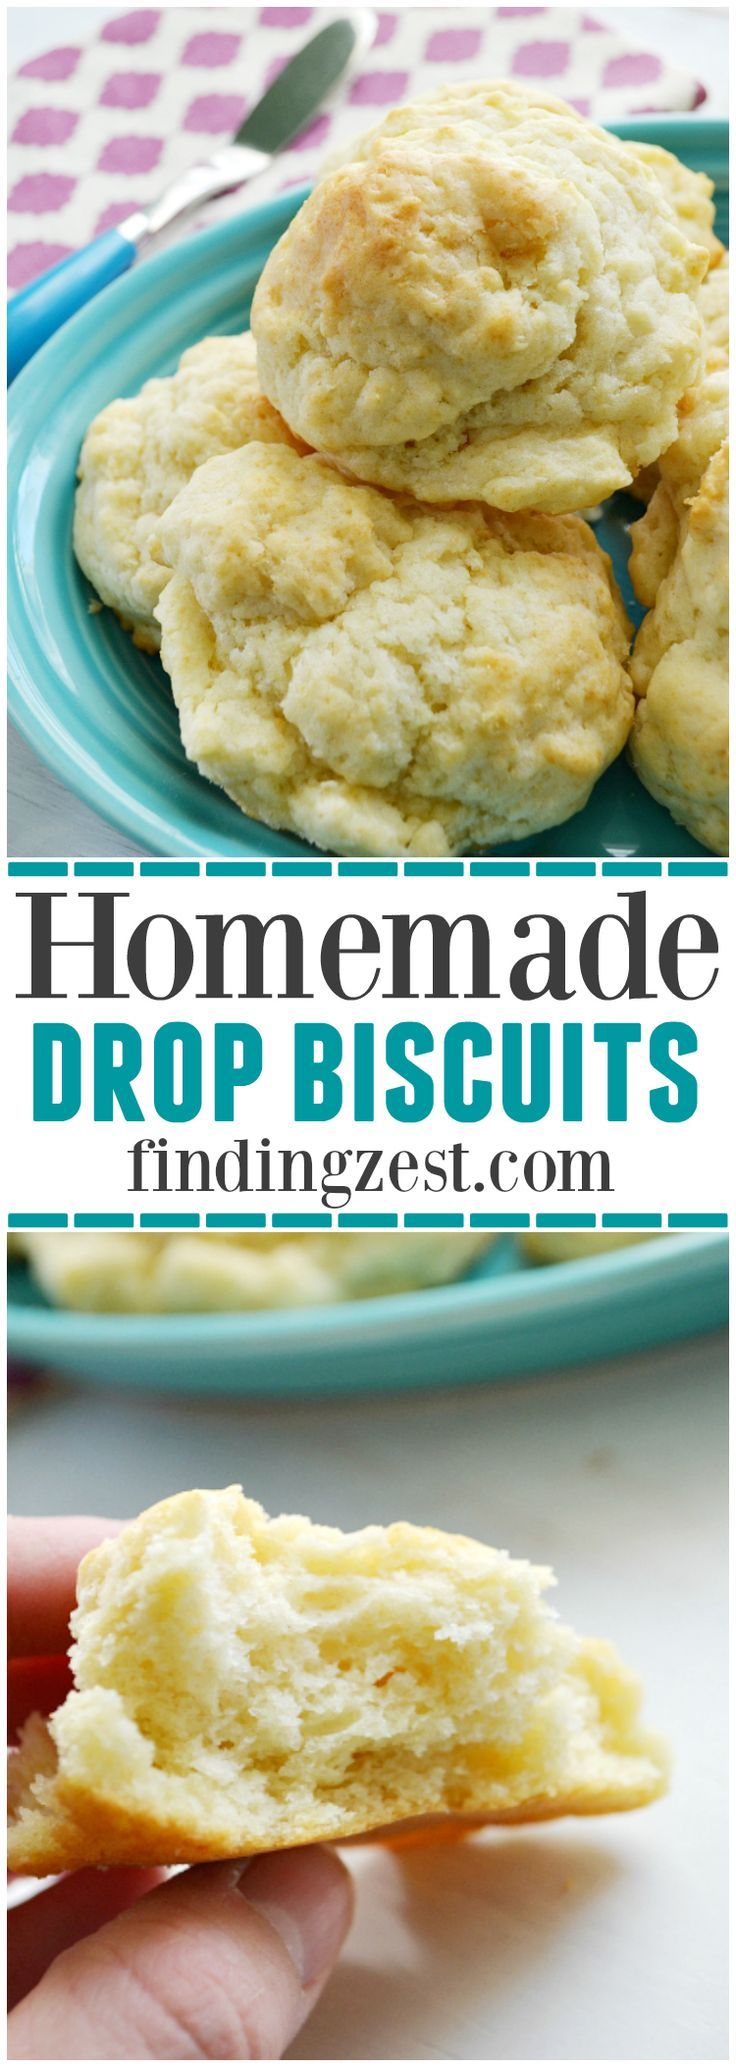 These homemade drop biscuits from scratch can be ready in under 20 minutes from ingredients you already have on hand.